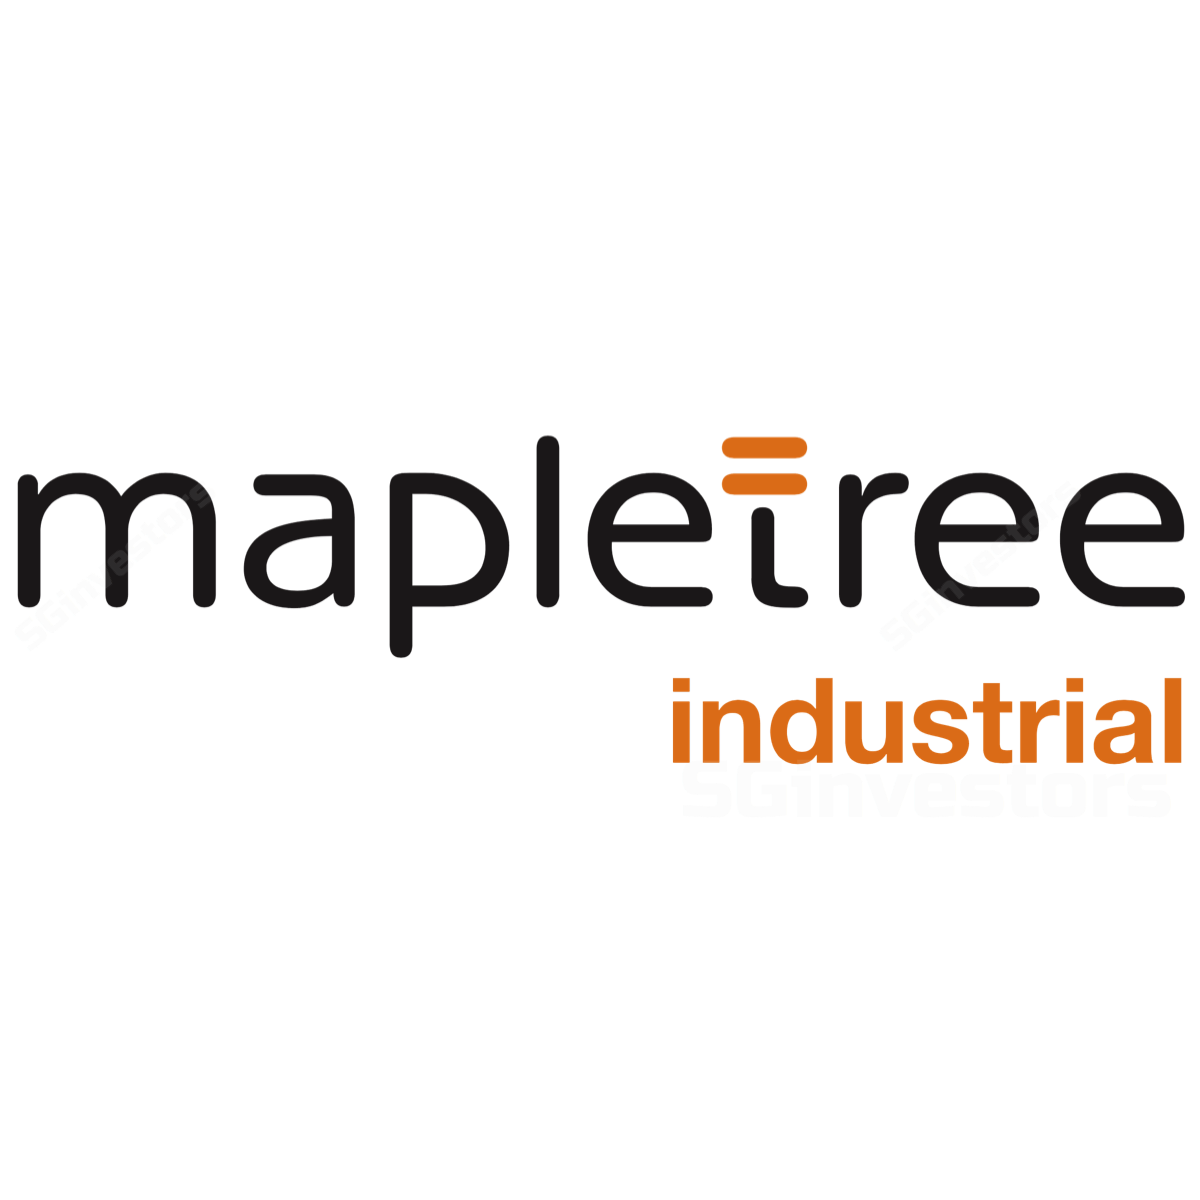 Mapletree Industrial Trust - CIMB Research 2017-01-25: J&J pre-termination priced in